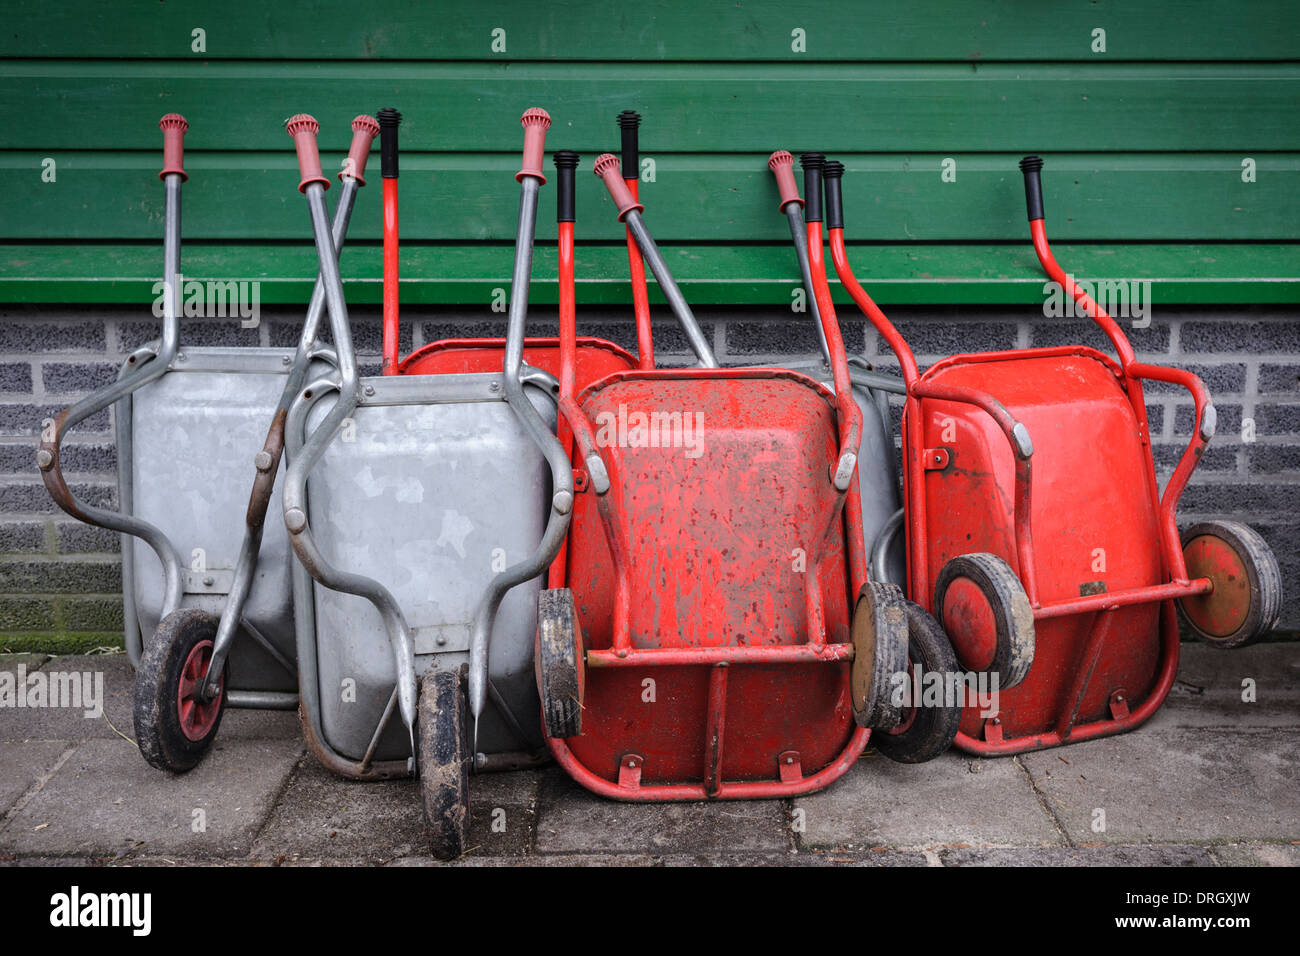 Wheelbarrows leaning against a wall, Noord Holland, Netherlands - Stock Image